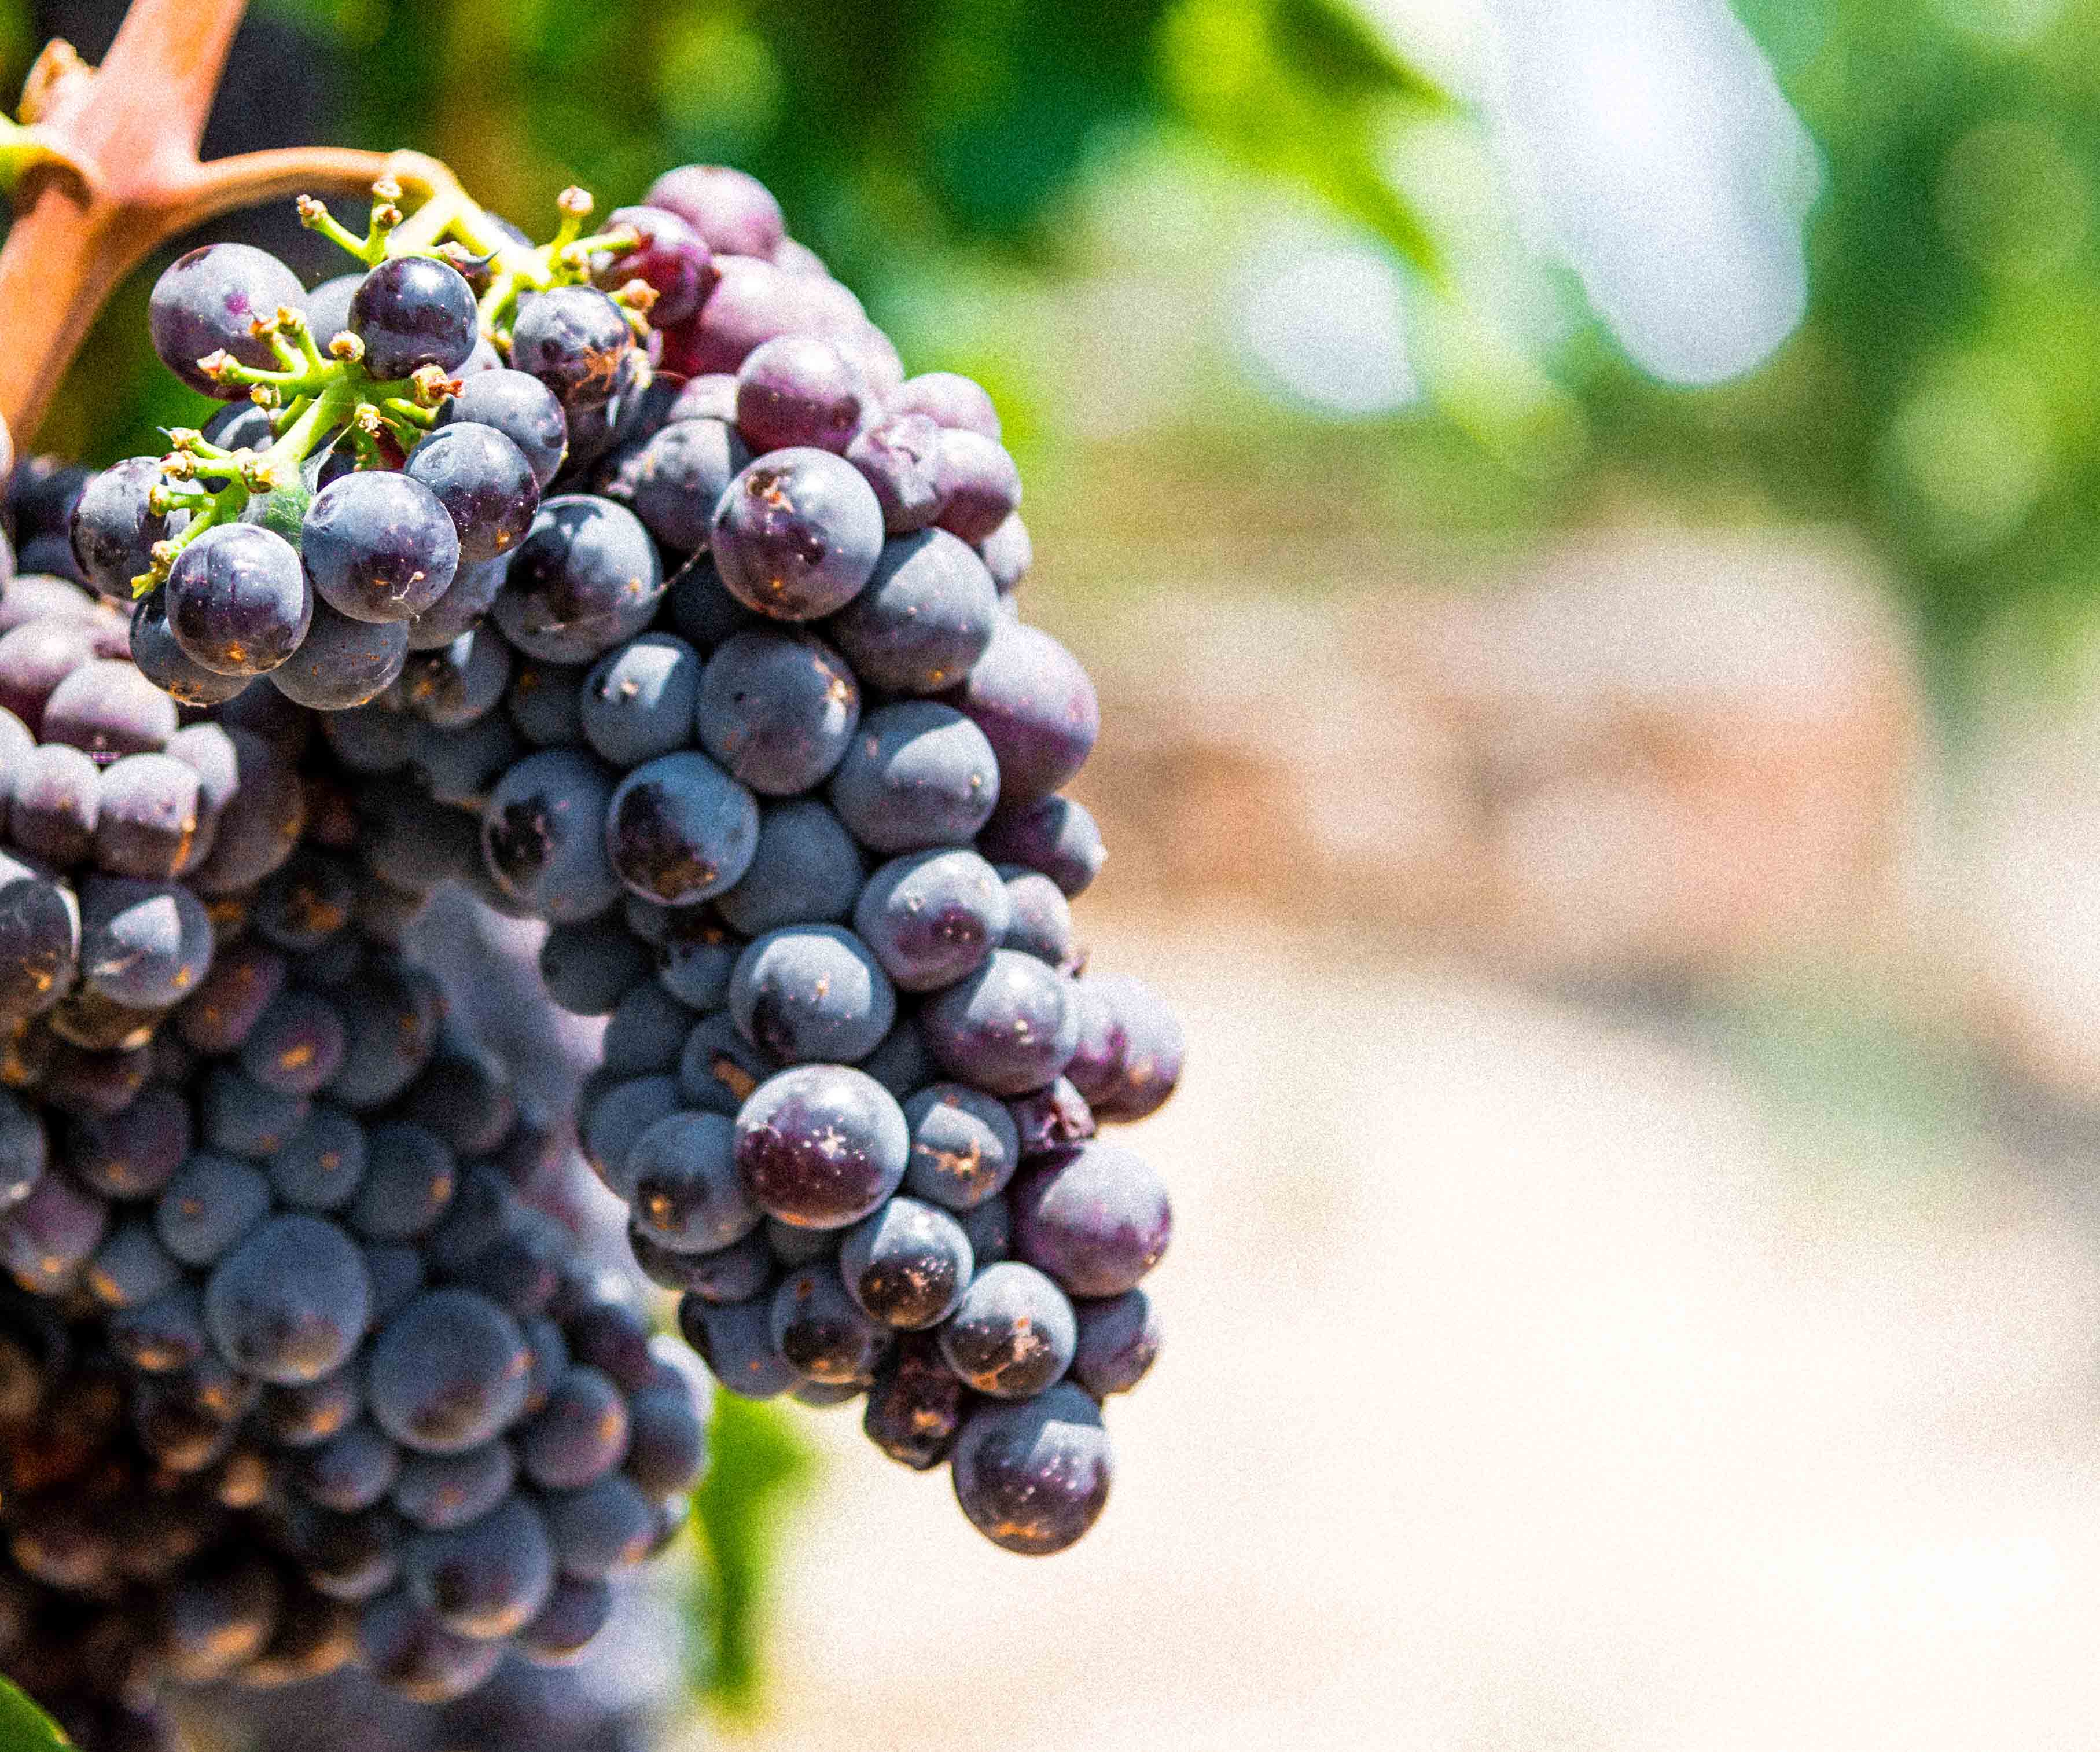 Skin Aging, Wrinkles & Dry Skin: Solved with Grapes